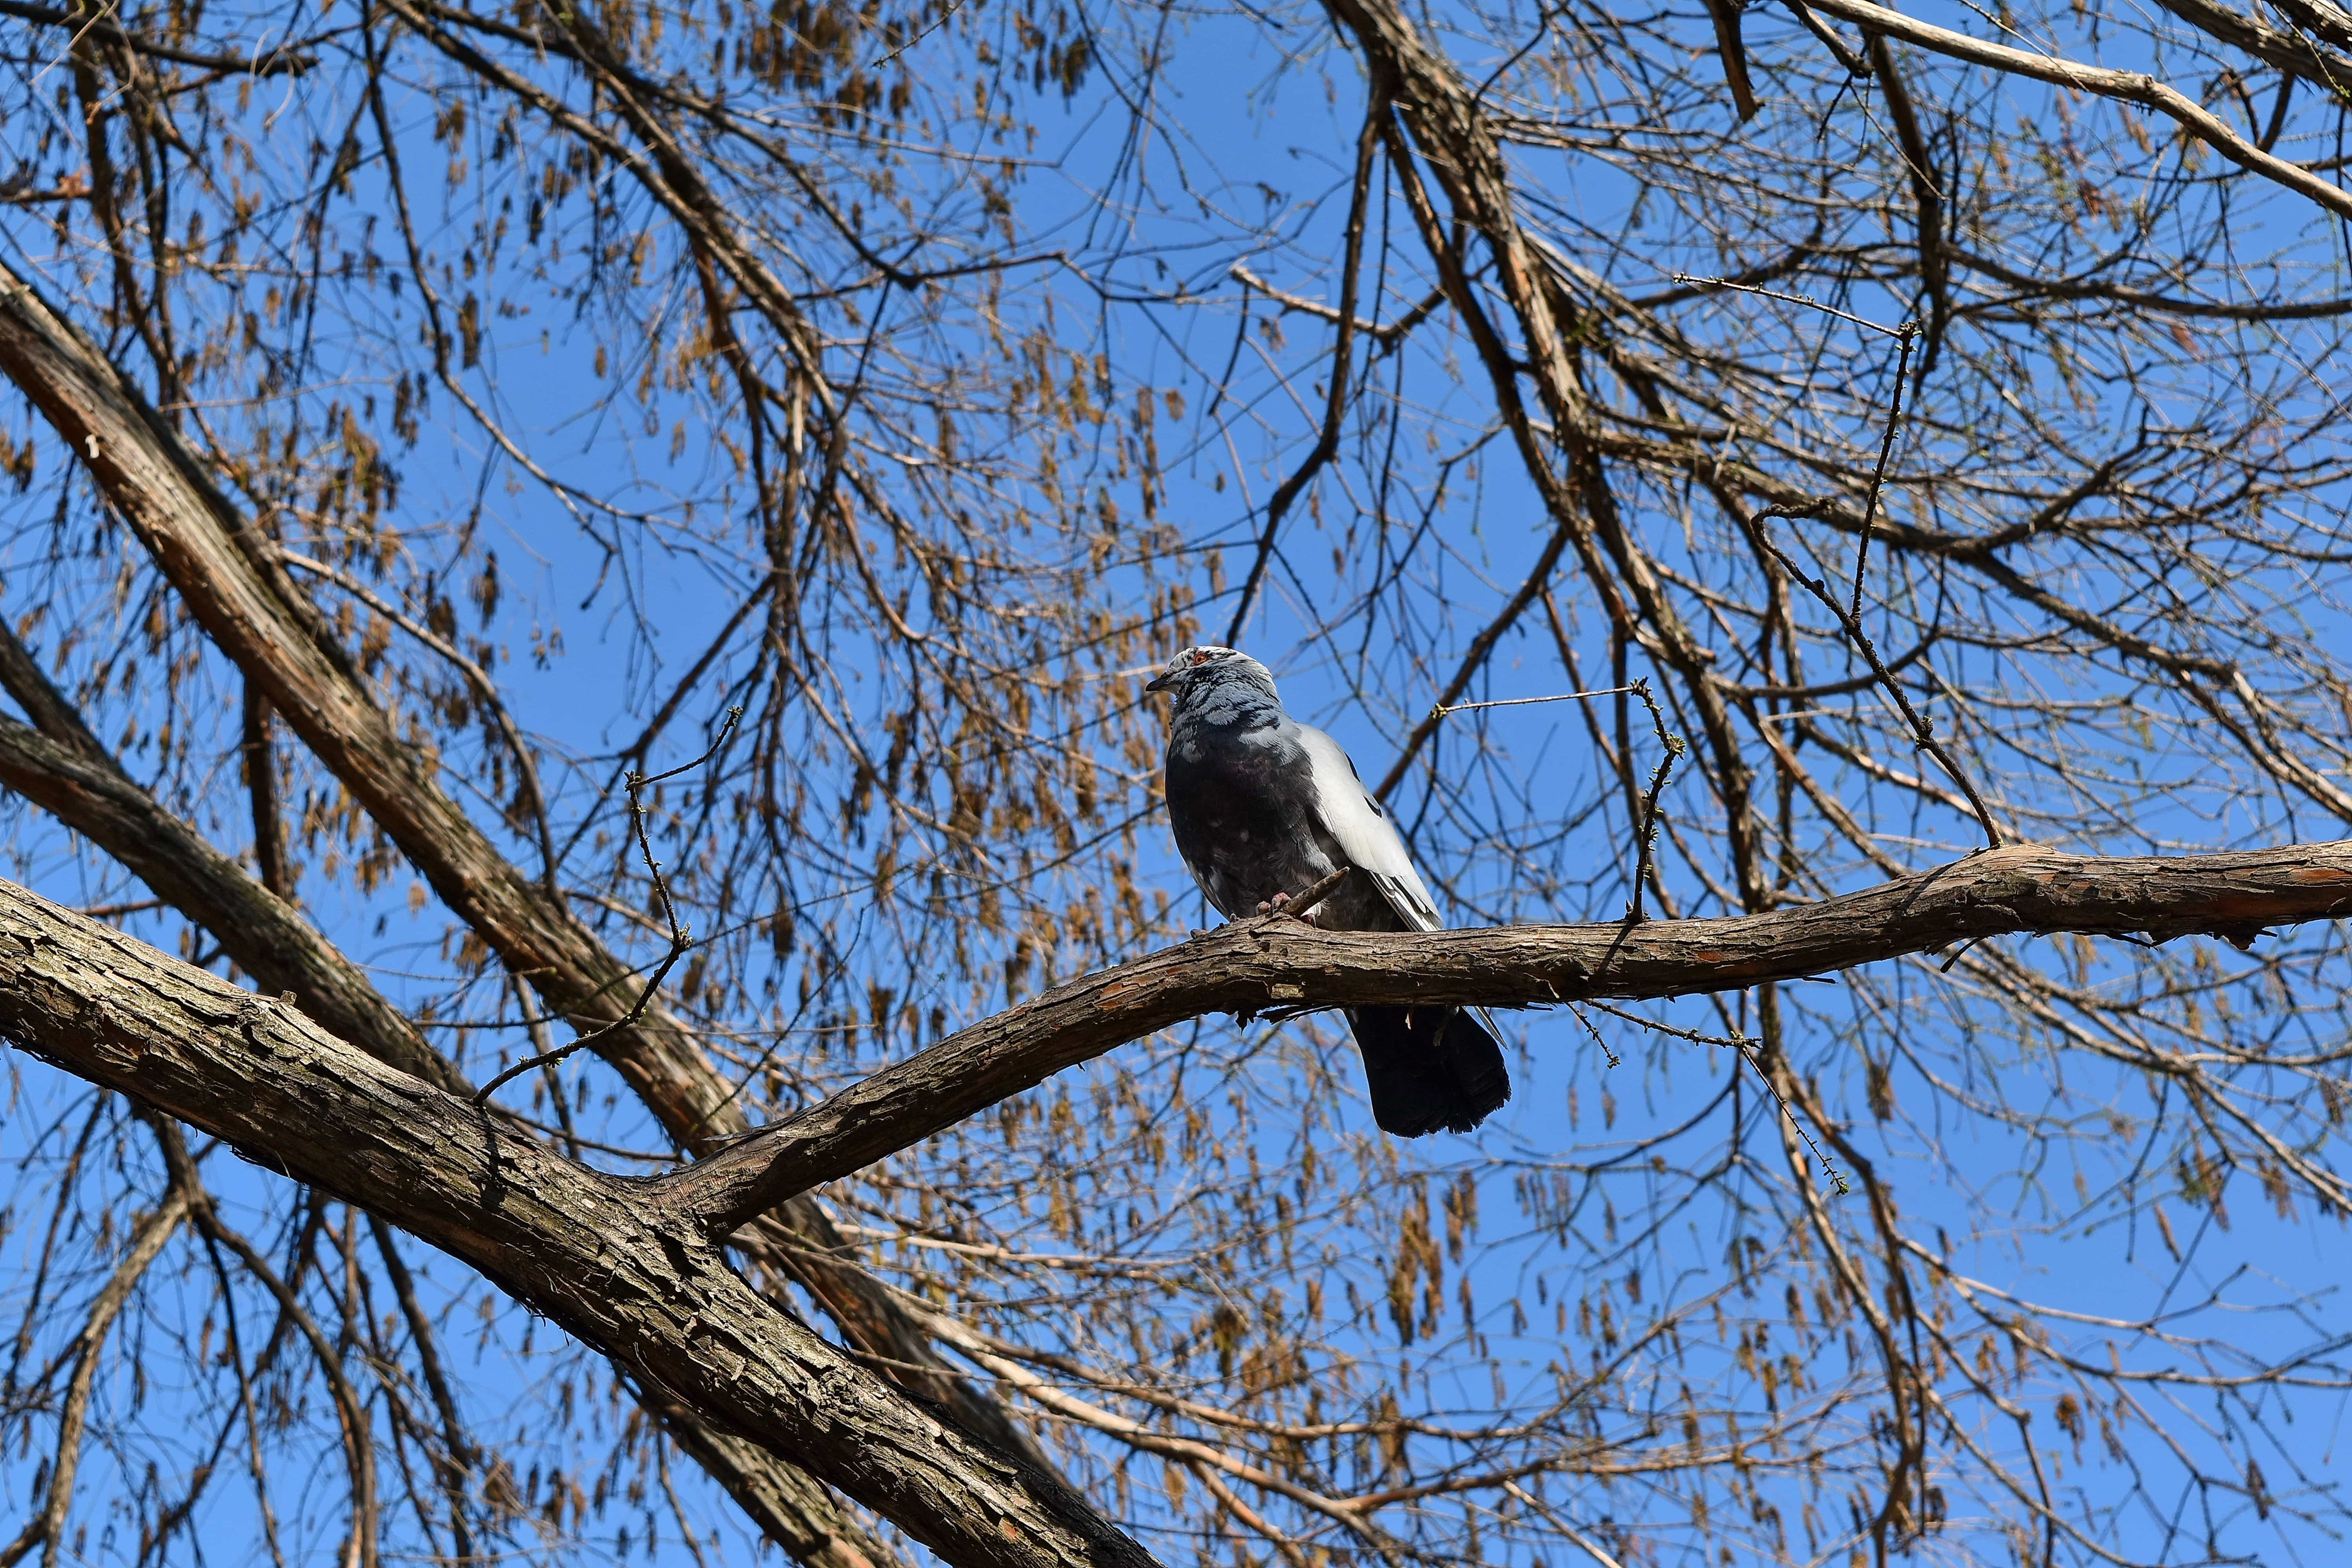 Free picture: branches, pigeon, nature, bird, tree, branch ...